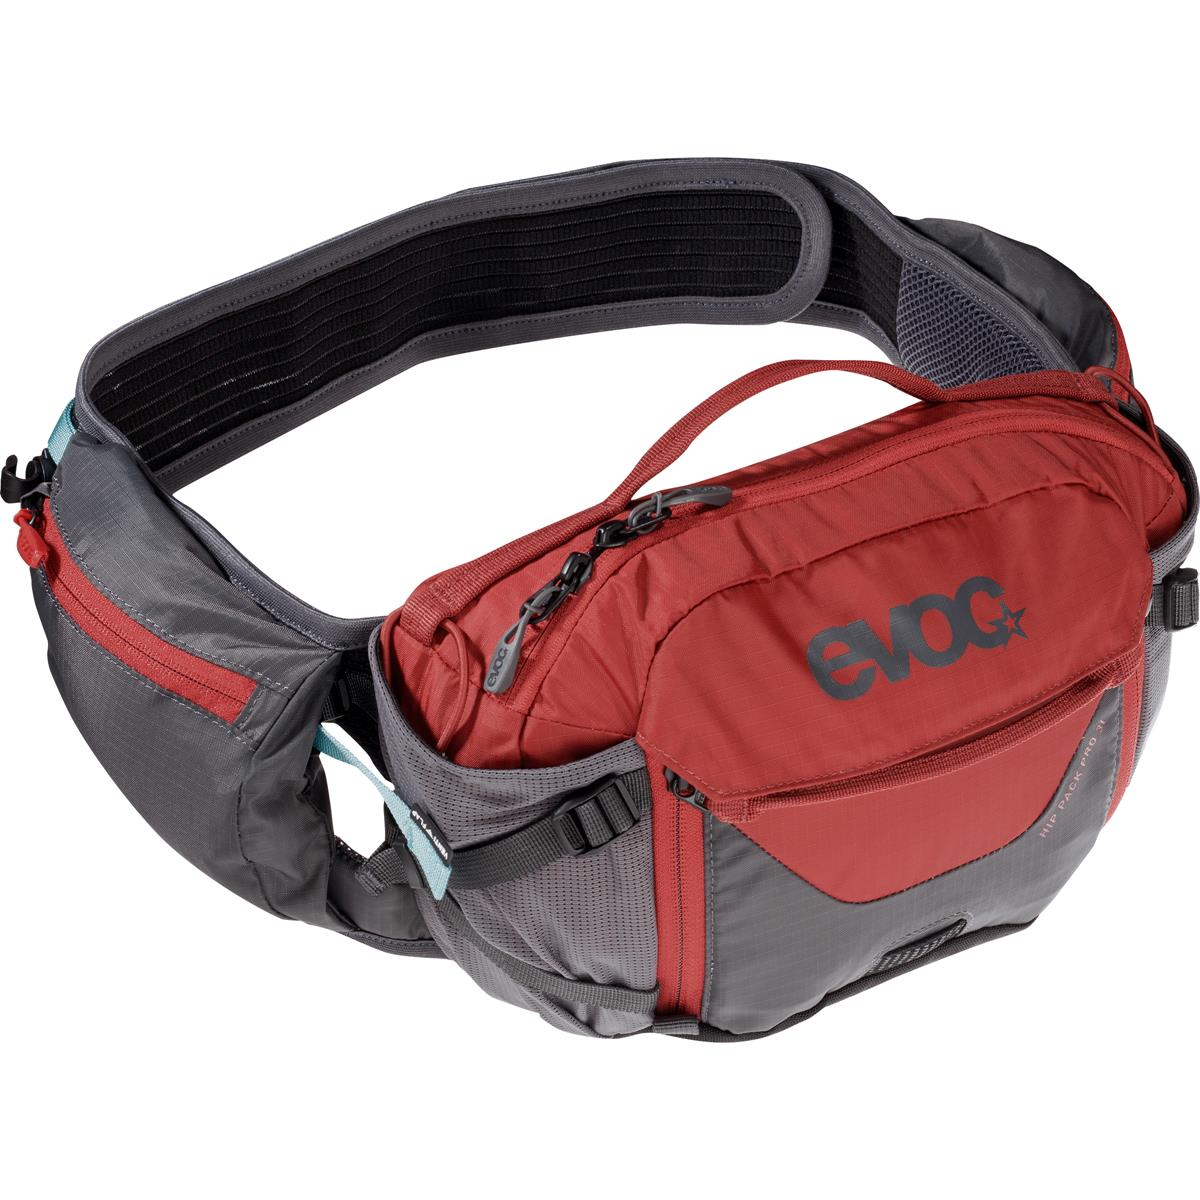 best wholesaler on feet at new arrive Evoc Hip Pack with Hydration System incl. 1.5 L Bladder Hip Pack ...